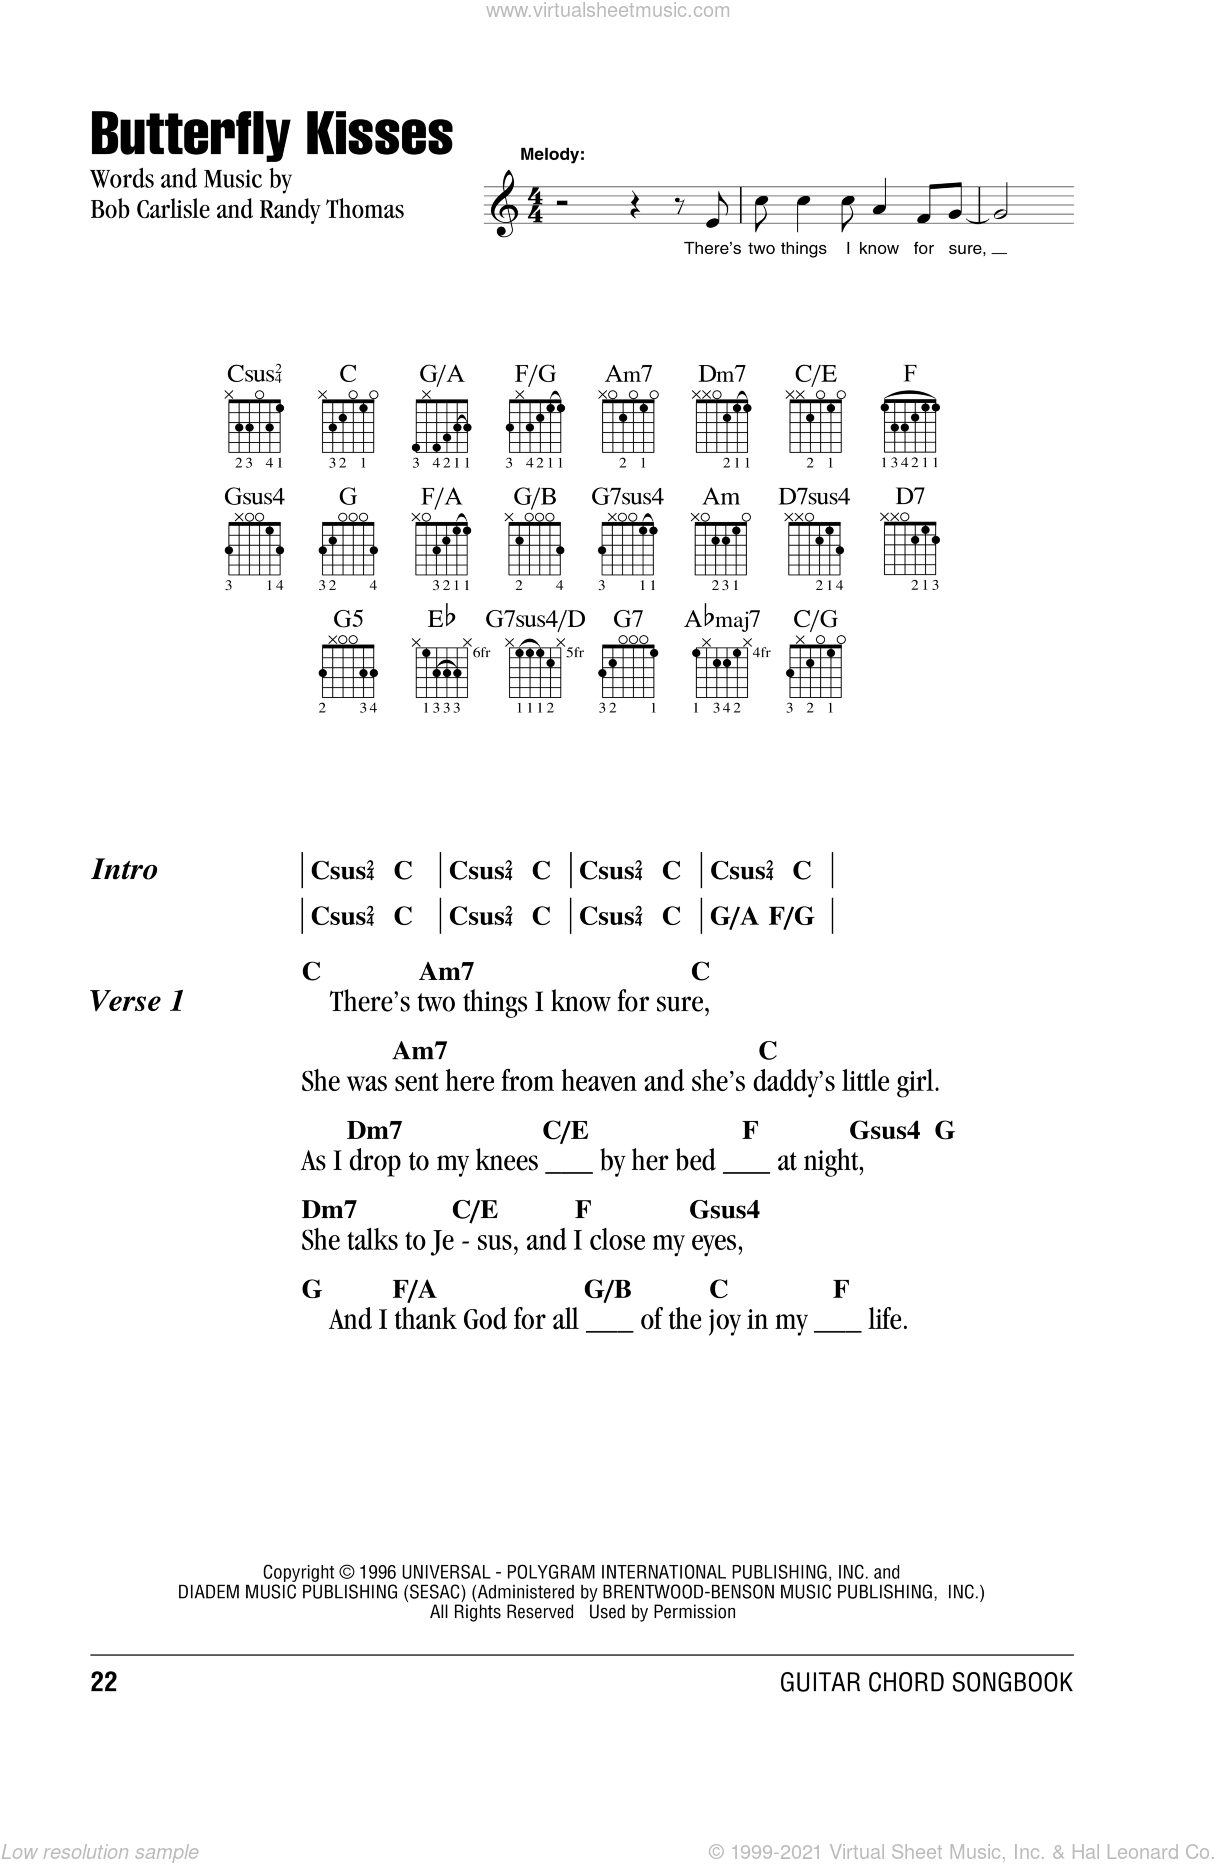 Butterfly Kisses sheet music for guitar (chords) by Randy Thomas and Bob Carlisle